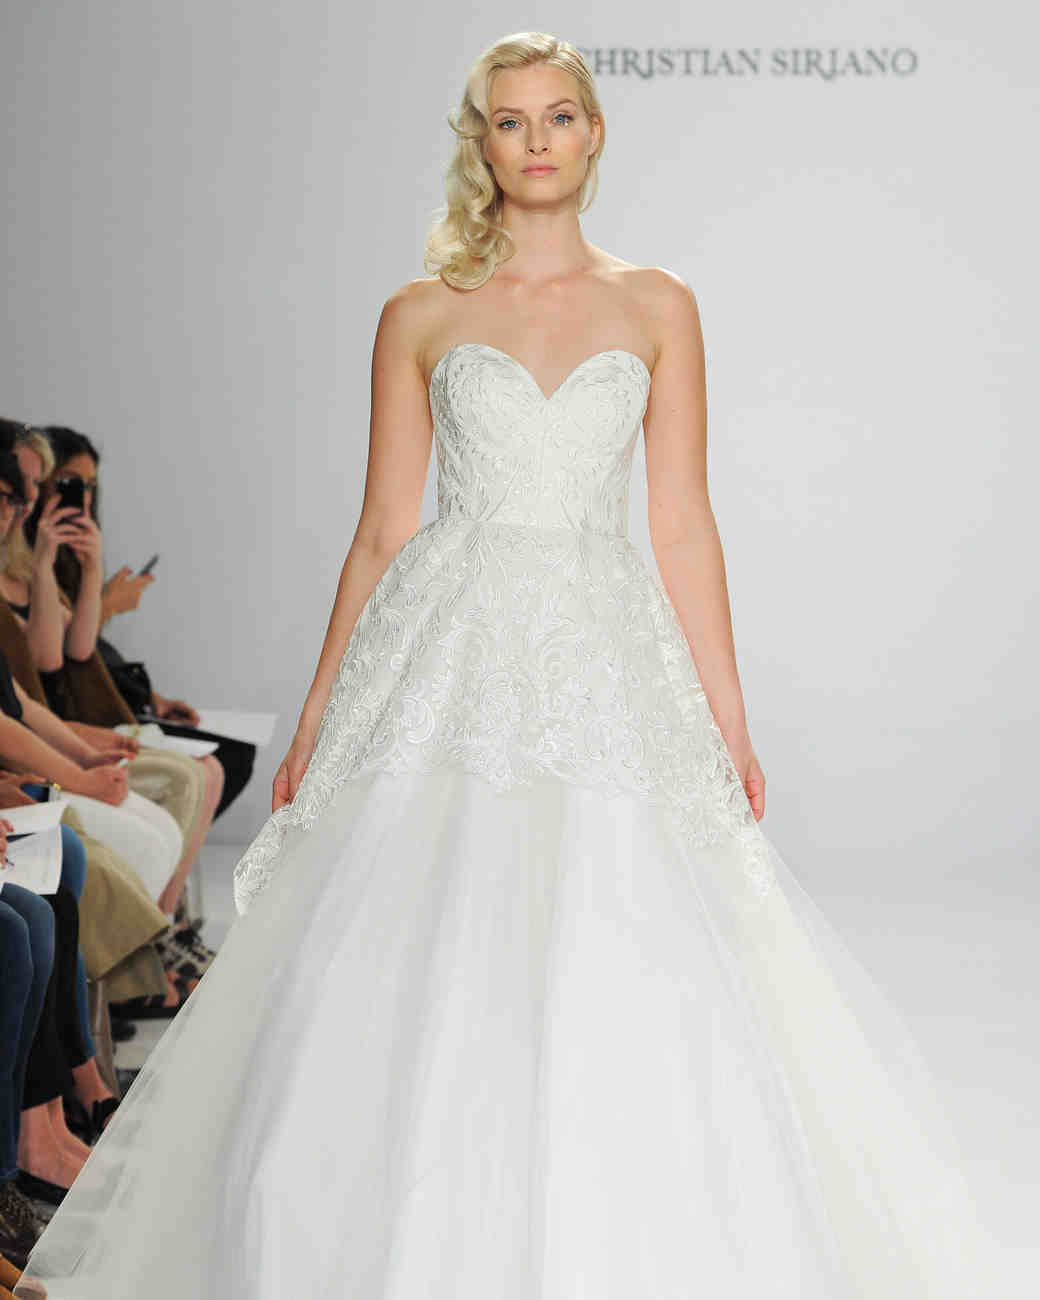 Christian Wedding Gown: Christian Siriano For Kleinfeld Spring 2017 Wedding Dress